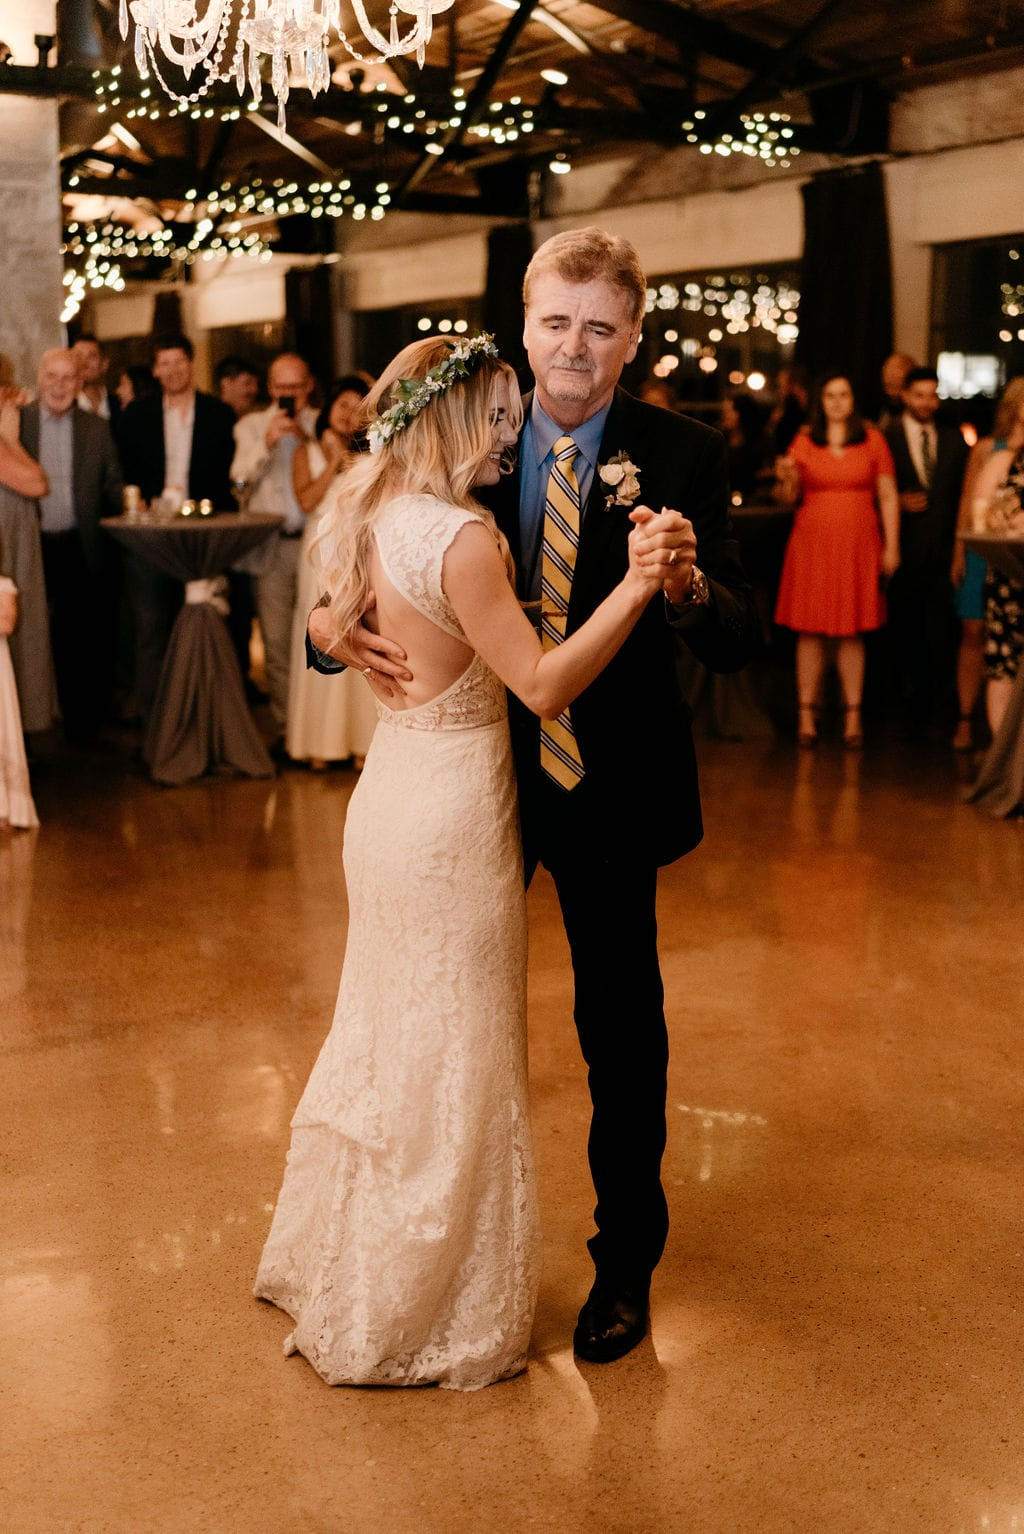 Father Daughter Dance between bride and groom at hickory street annex wedding reception in Deep ellum